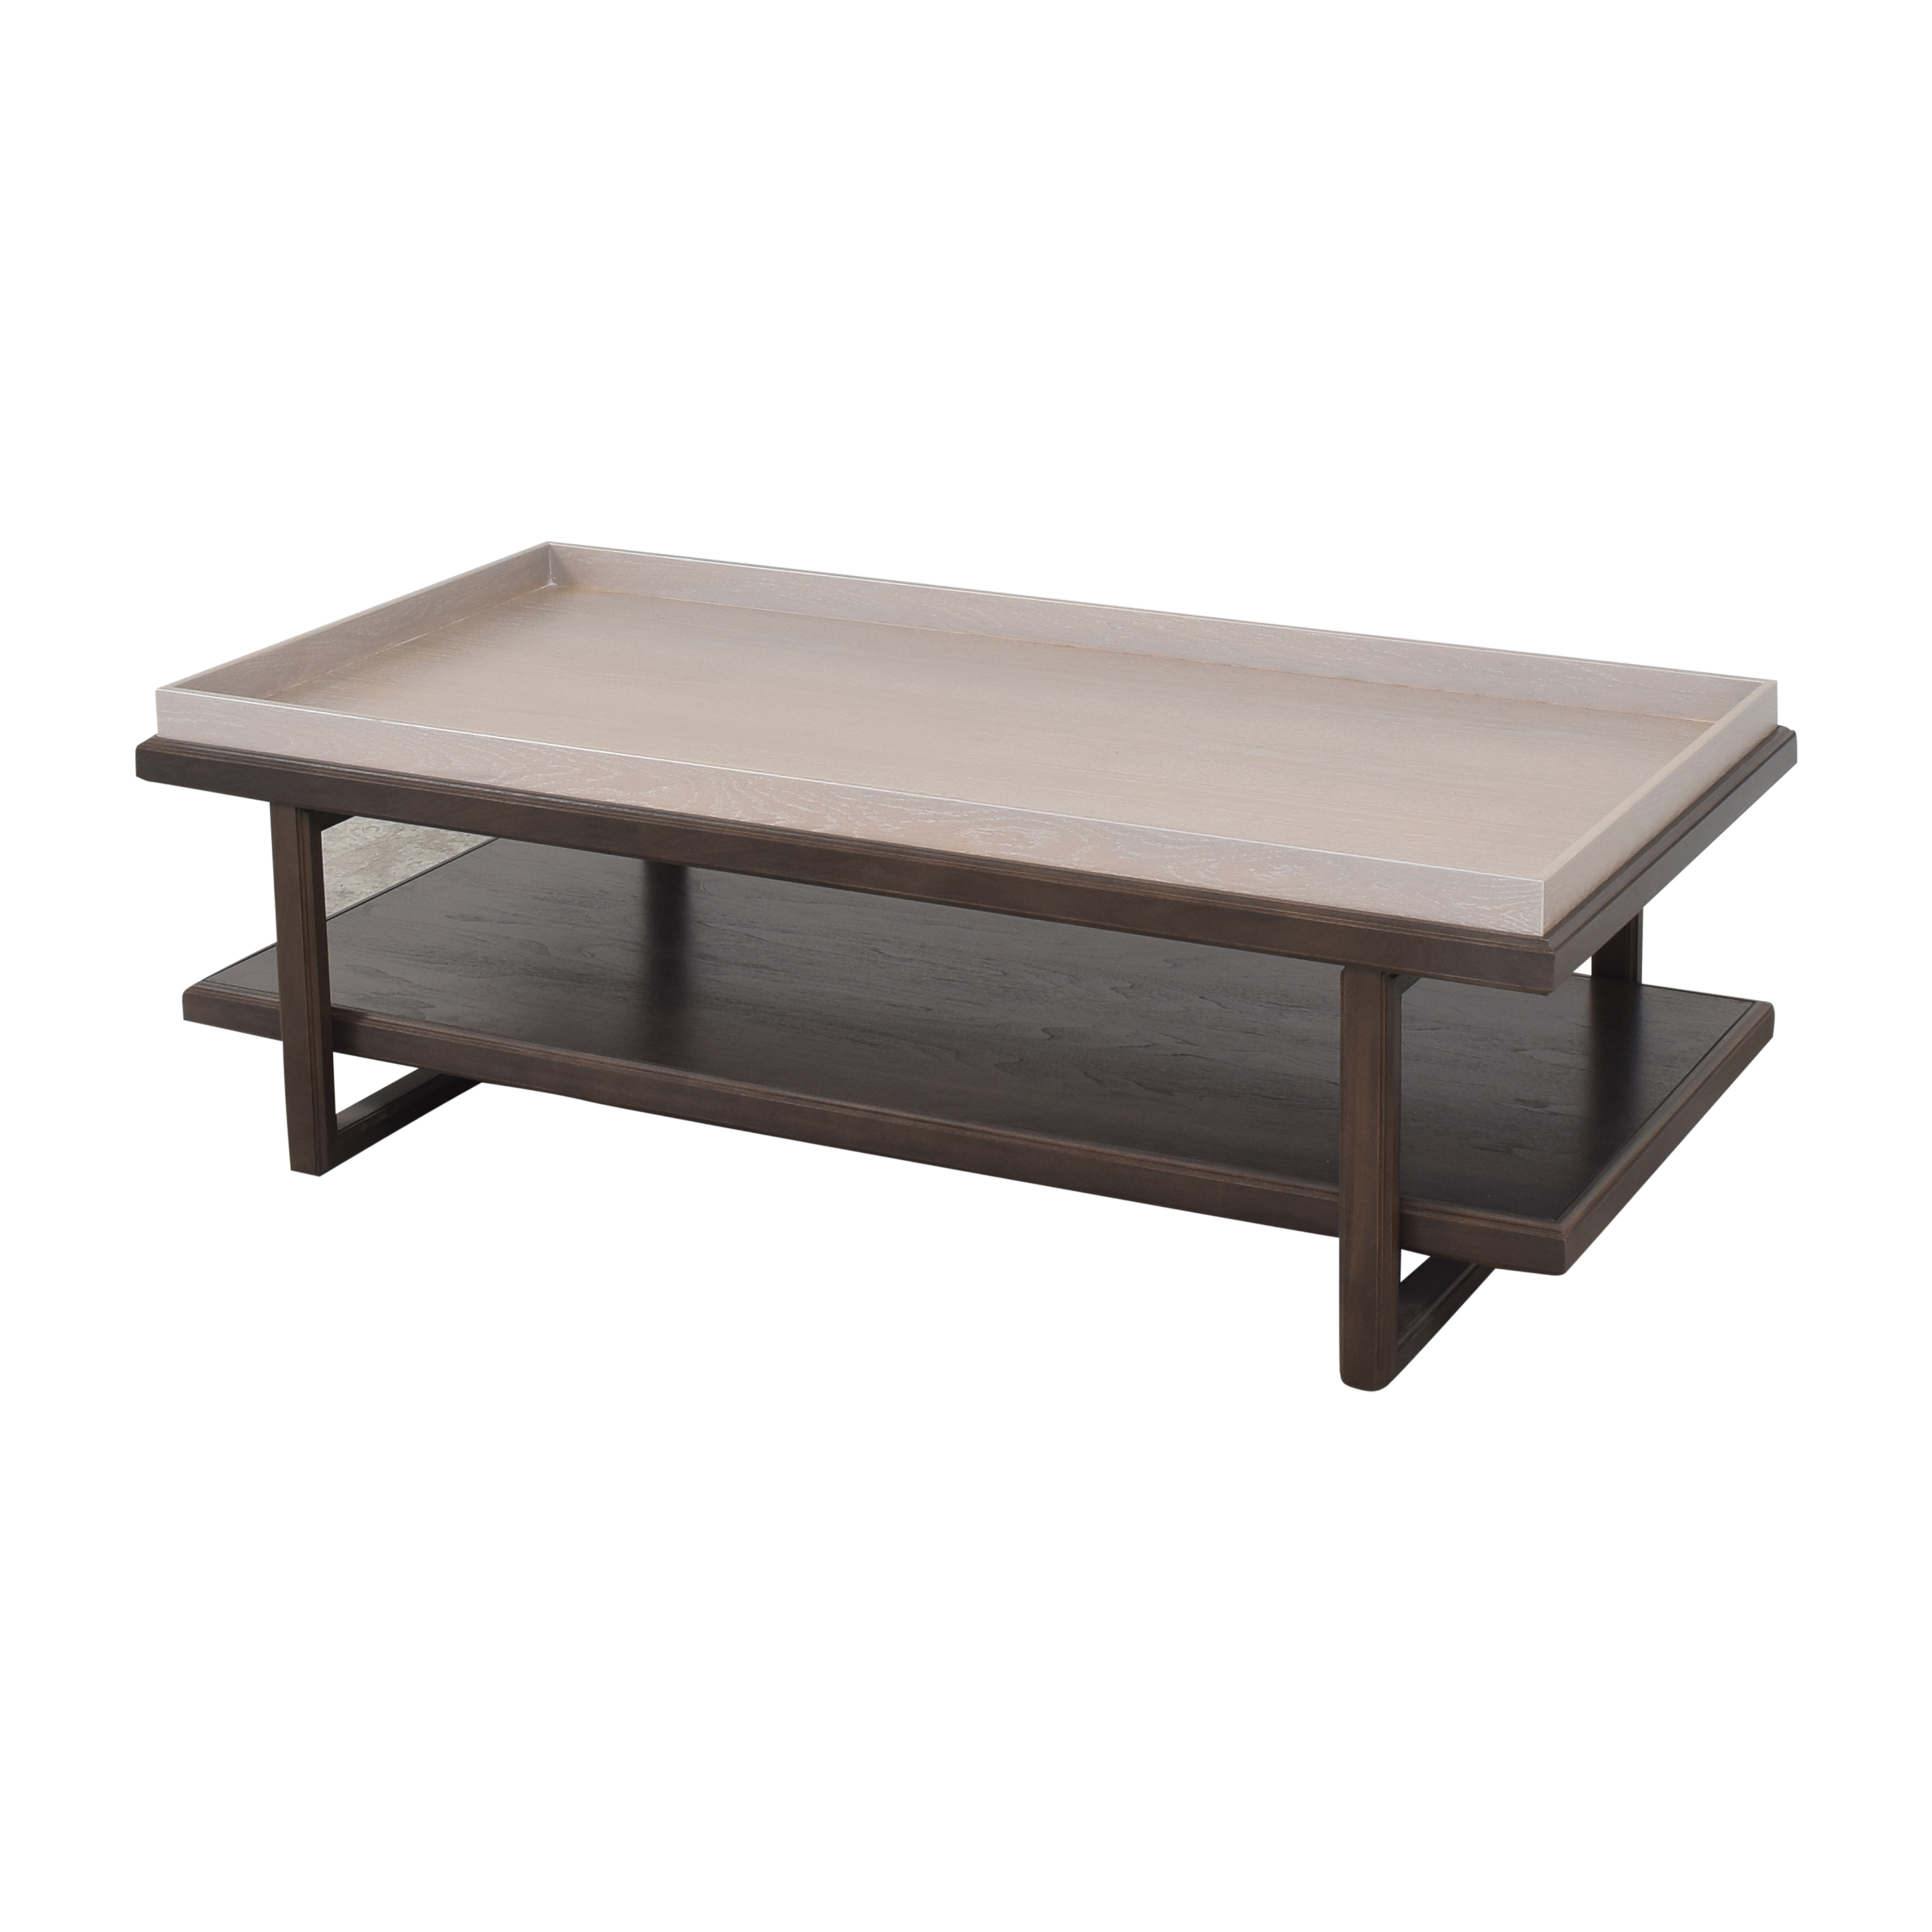 The New Traditionalists The New Traditionalists Tray Top Coffee Table ct